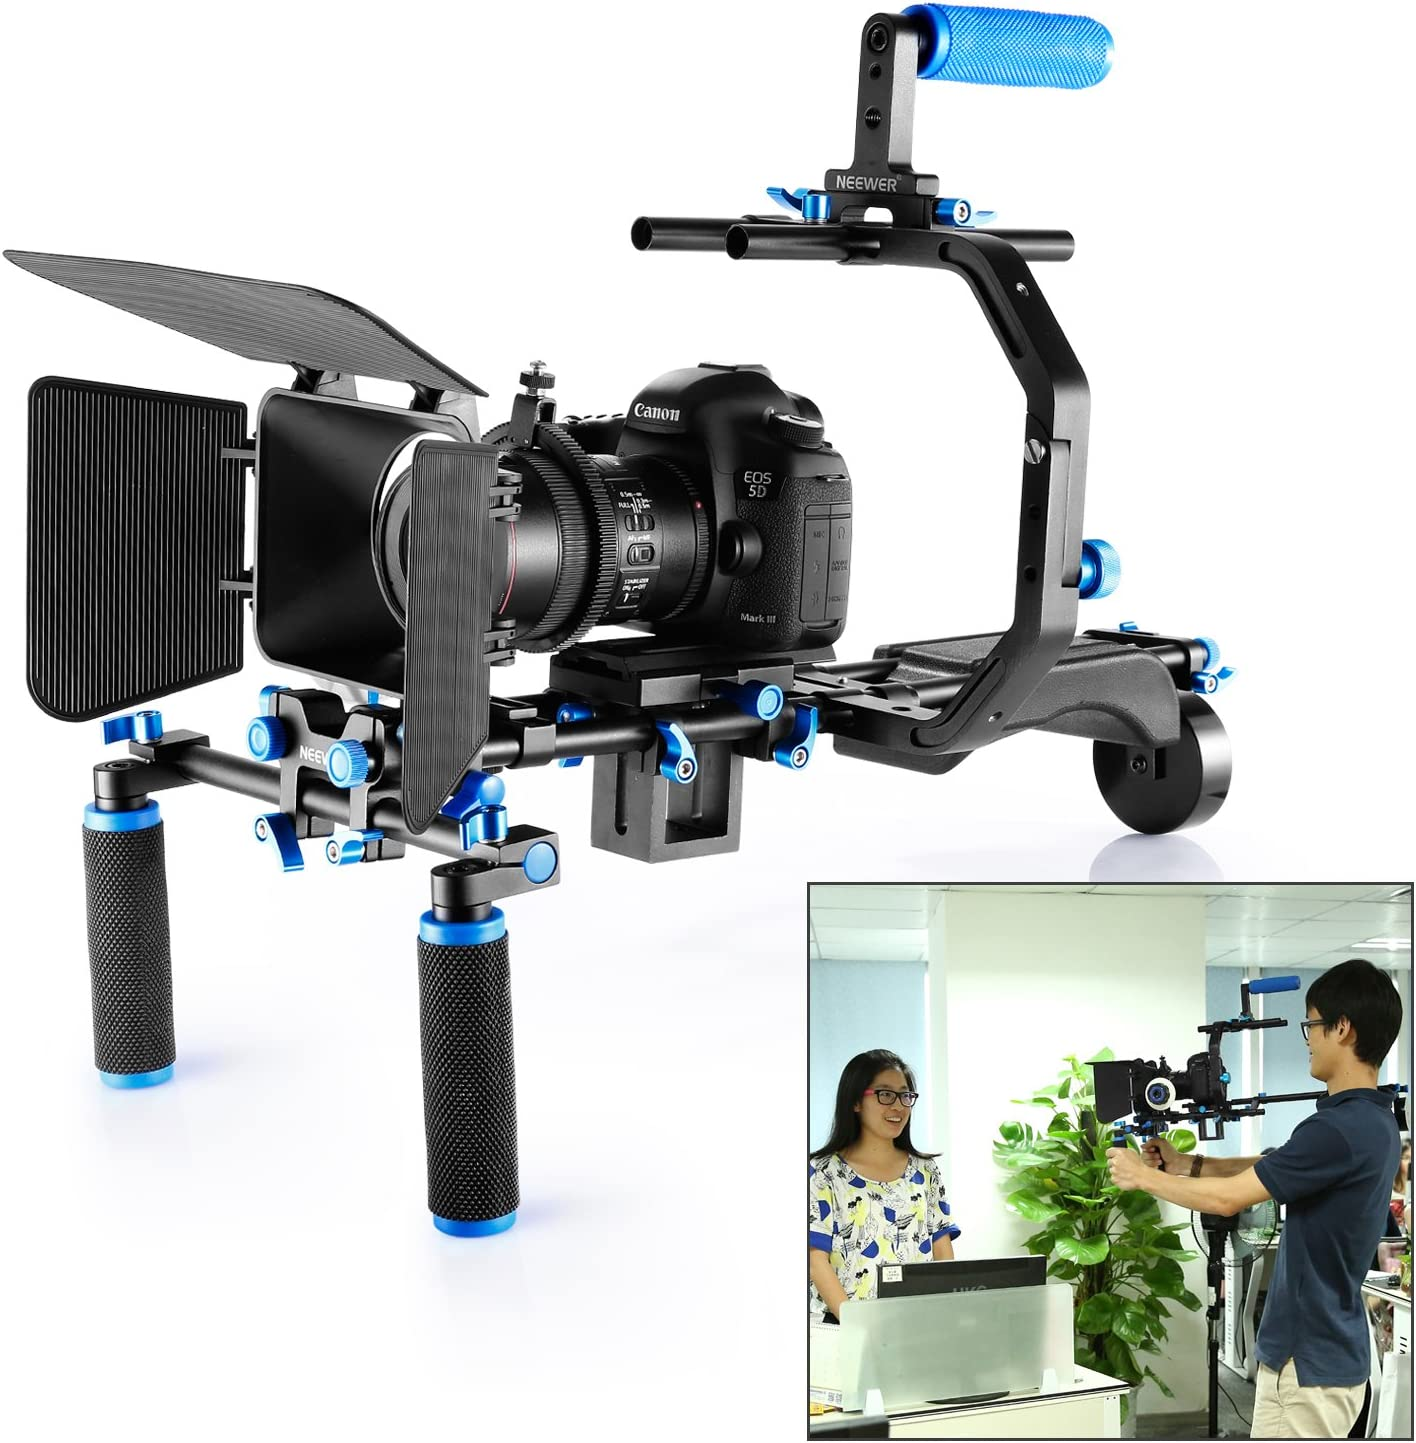 Neewer Film Movie Video Making System Kit for Canon Nikon Sony and Other DSLR Cameras Video Camcorders C-shaped Bracket,Handle Grip,15mm Rod,Matte Box,Follow Focus,Shoulder Rig Blue+Black includes